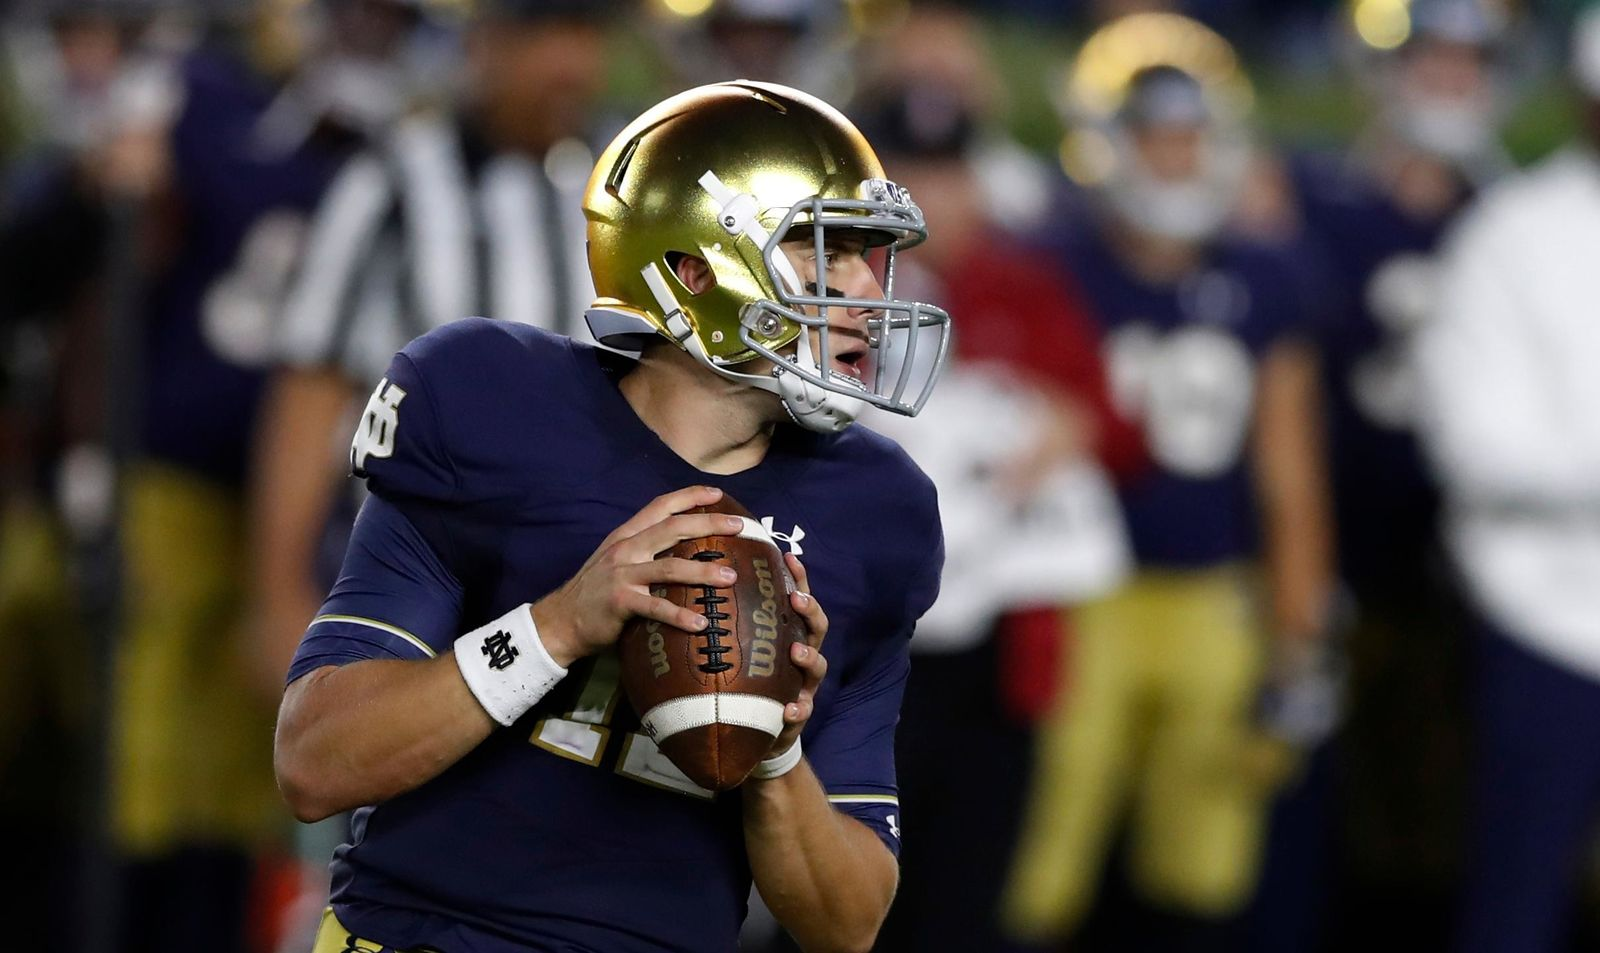 Notre Dame quarterback Ian Book looks downfield during the first half of the team's NCAA college football game against Stanford, Saturday, Sept. 29, 2018, in South Bend, Ind. (AP Photo/Carlos Osorio)